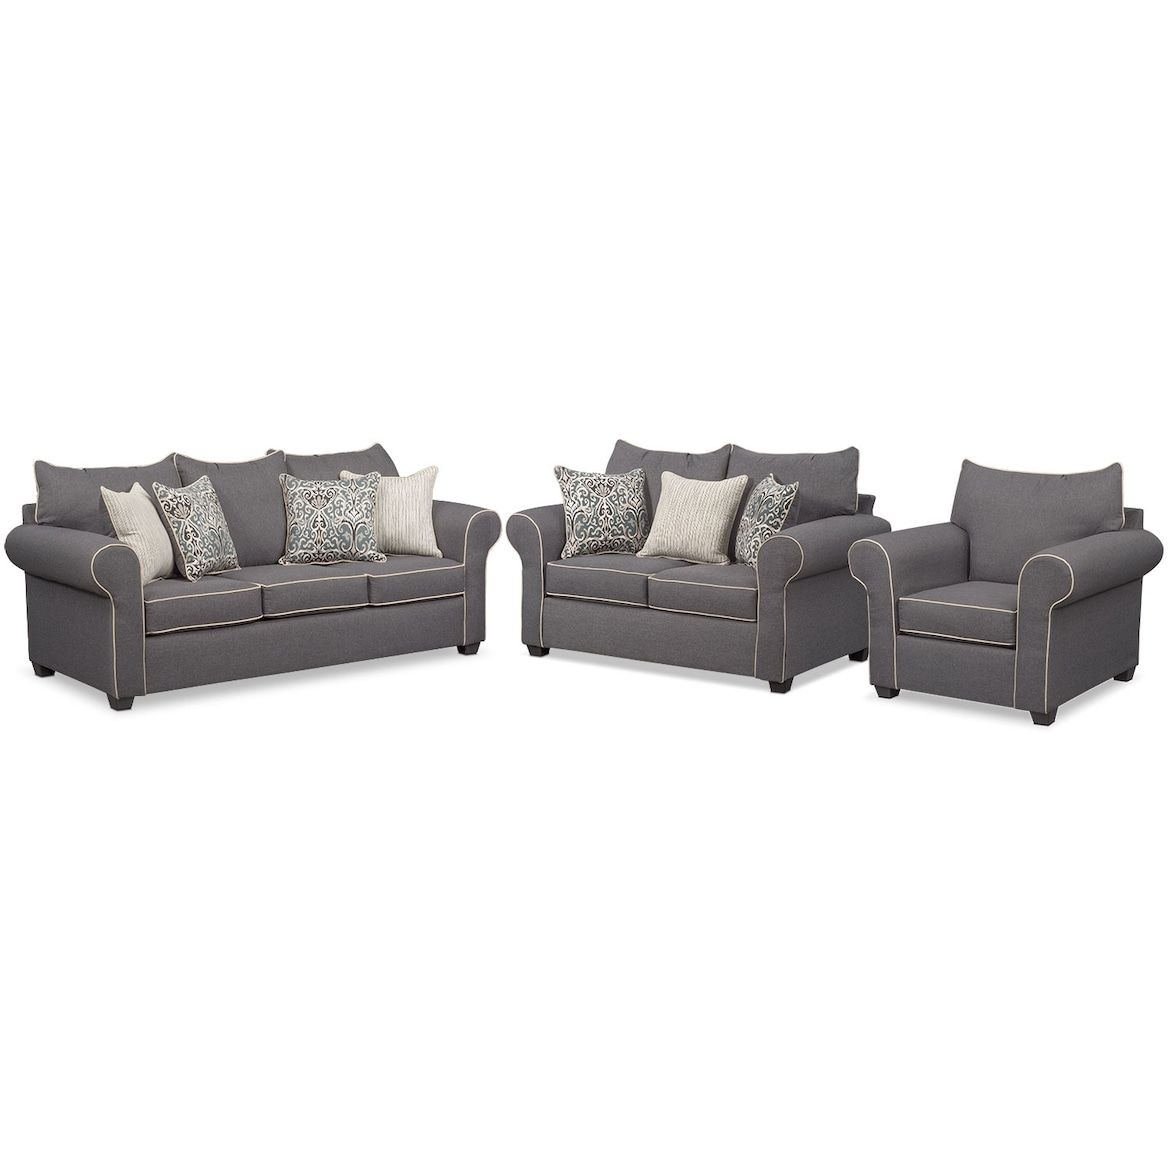 Carla Queen Sleeper Sofa Loveseat And Chair Set Value City Furniture And Mattresses Love Seat Value City Furniture Loveseat Sofa